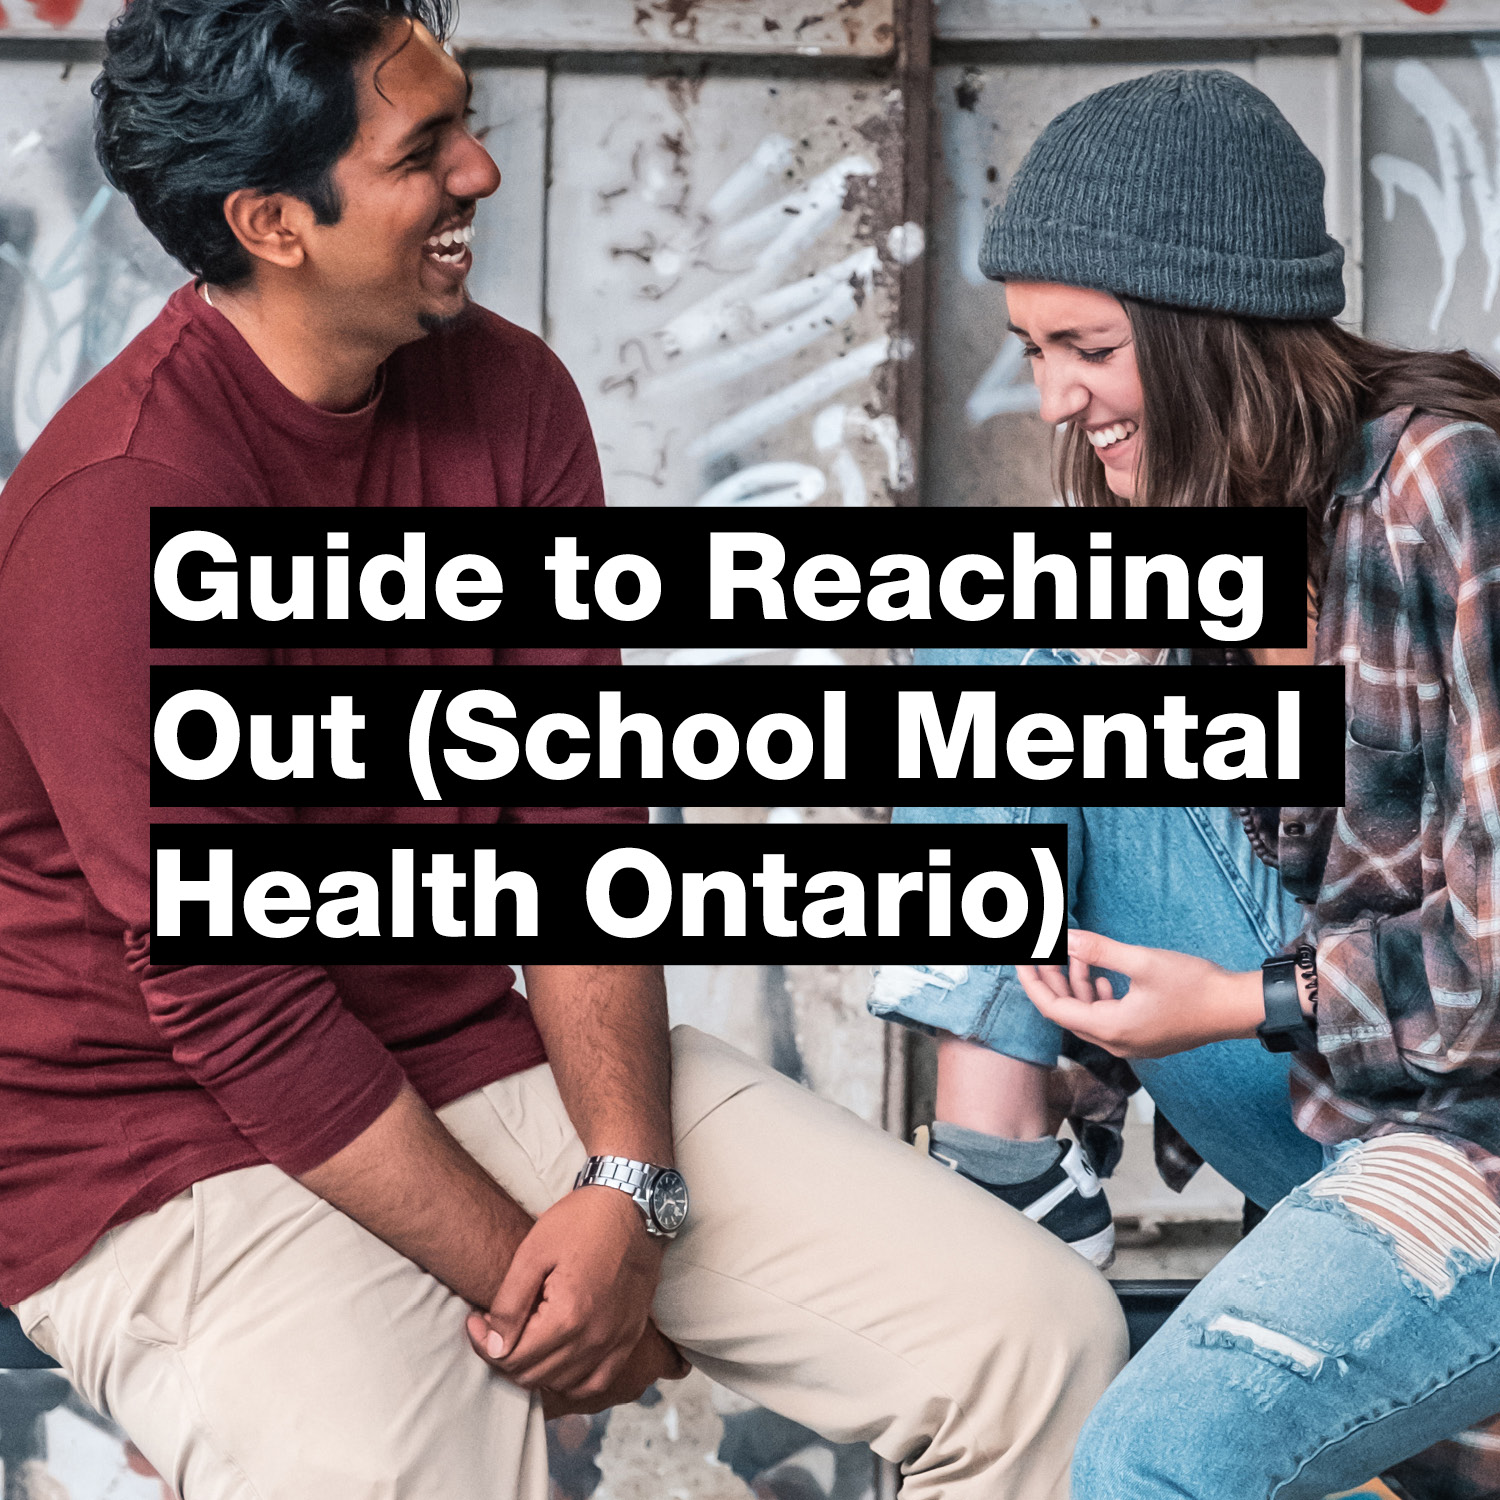 Guide to Reaching Out (School Mental Health Ontario)